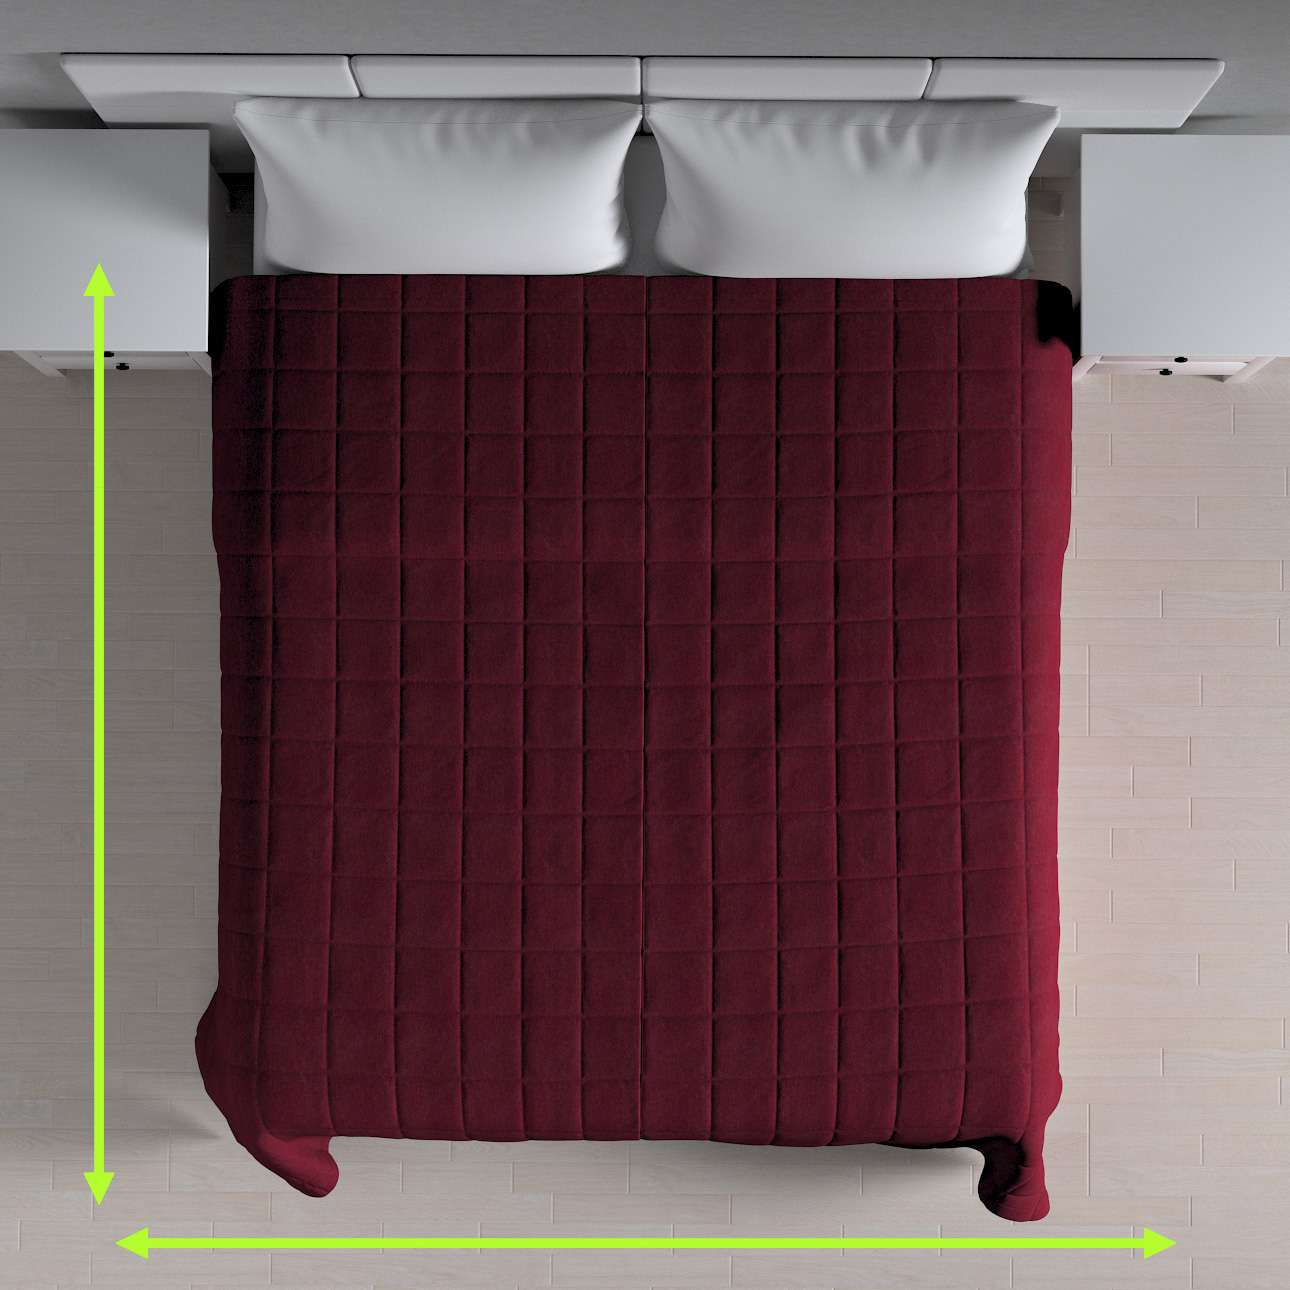 Quilted throw (check quilt pattern) in collection Chenille, fabric: 702-19